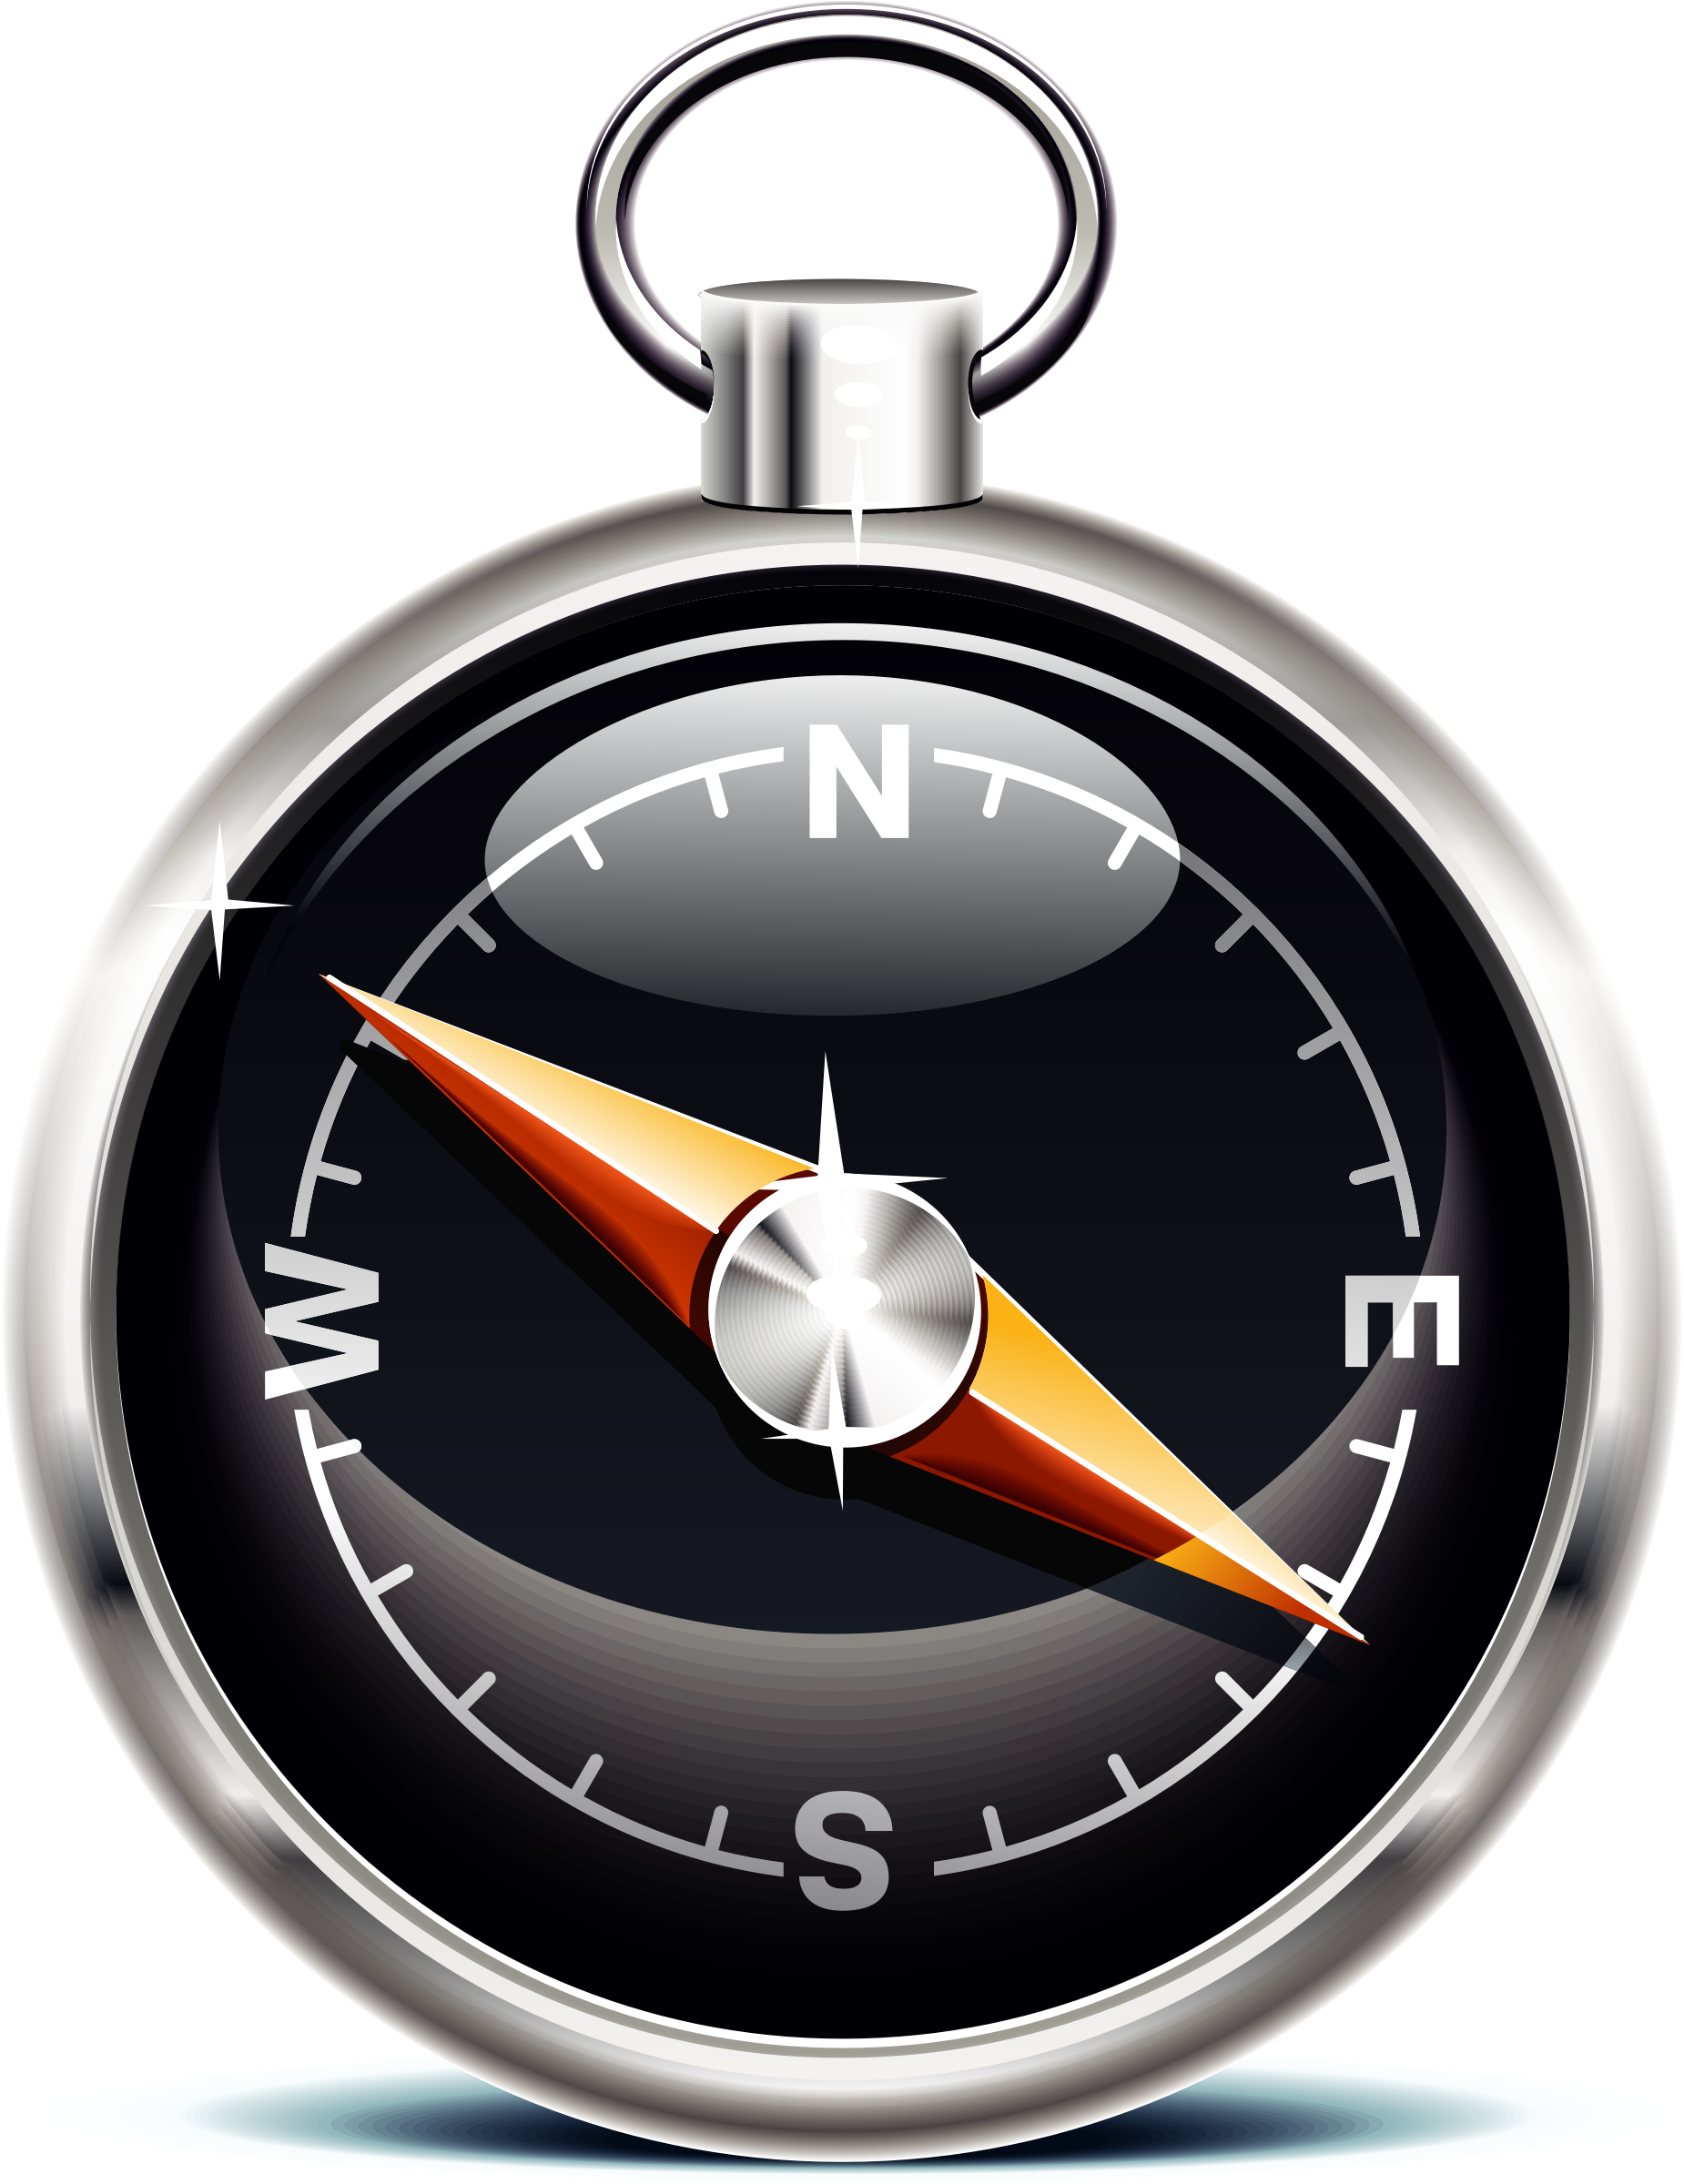 Icons big image png. Clock clipart compass